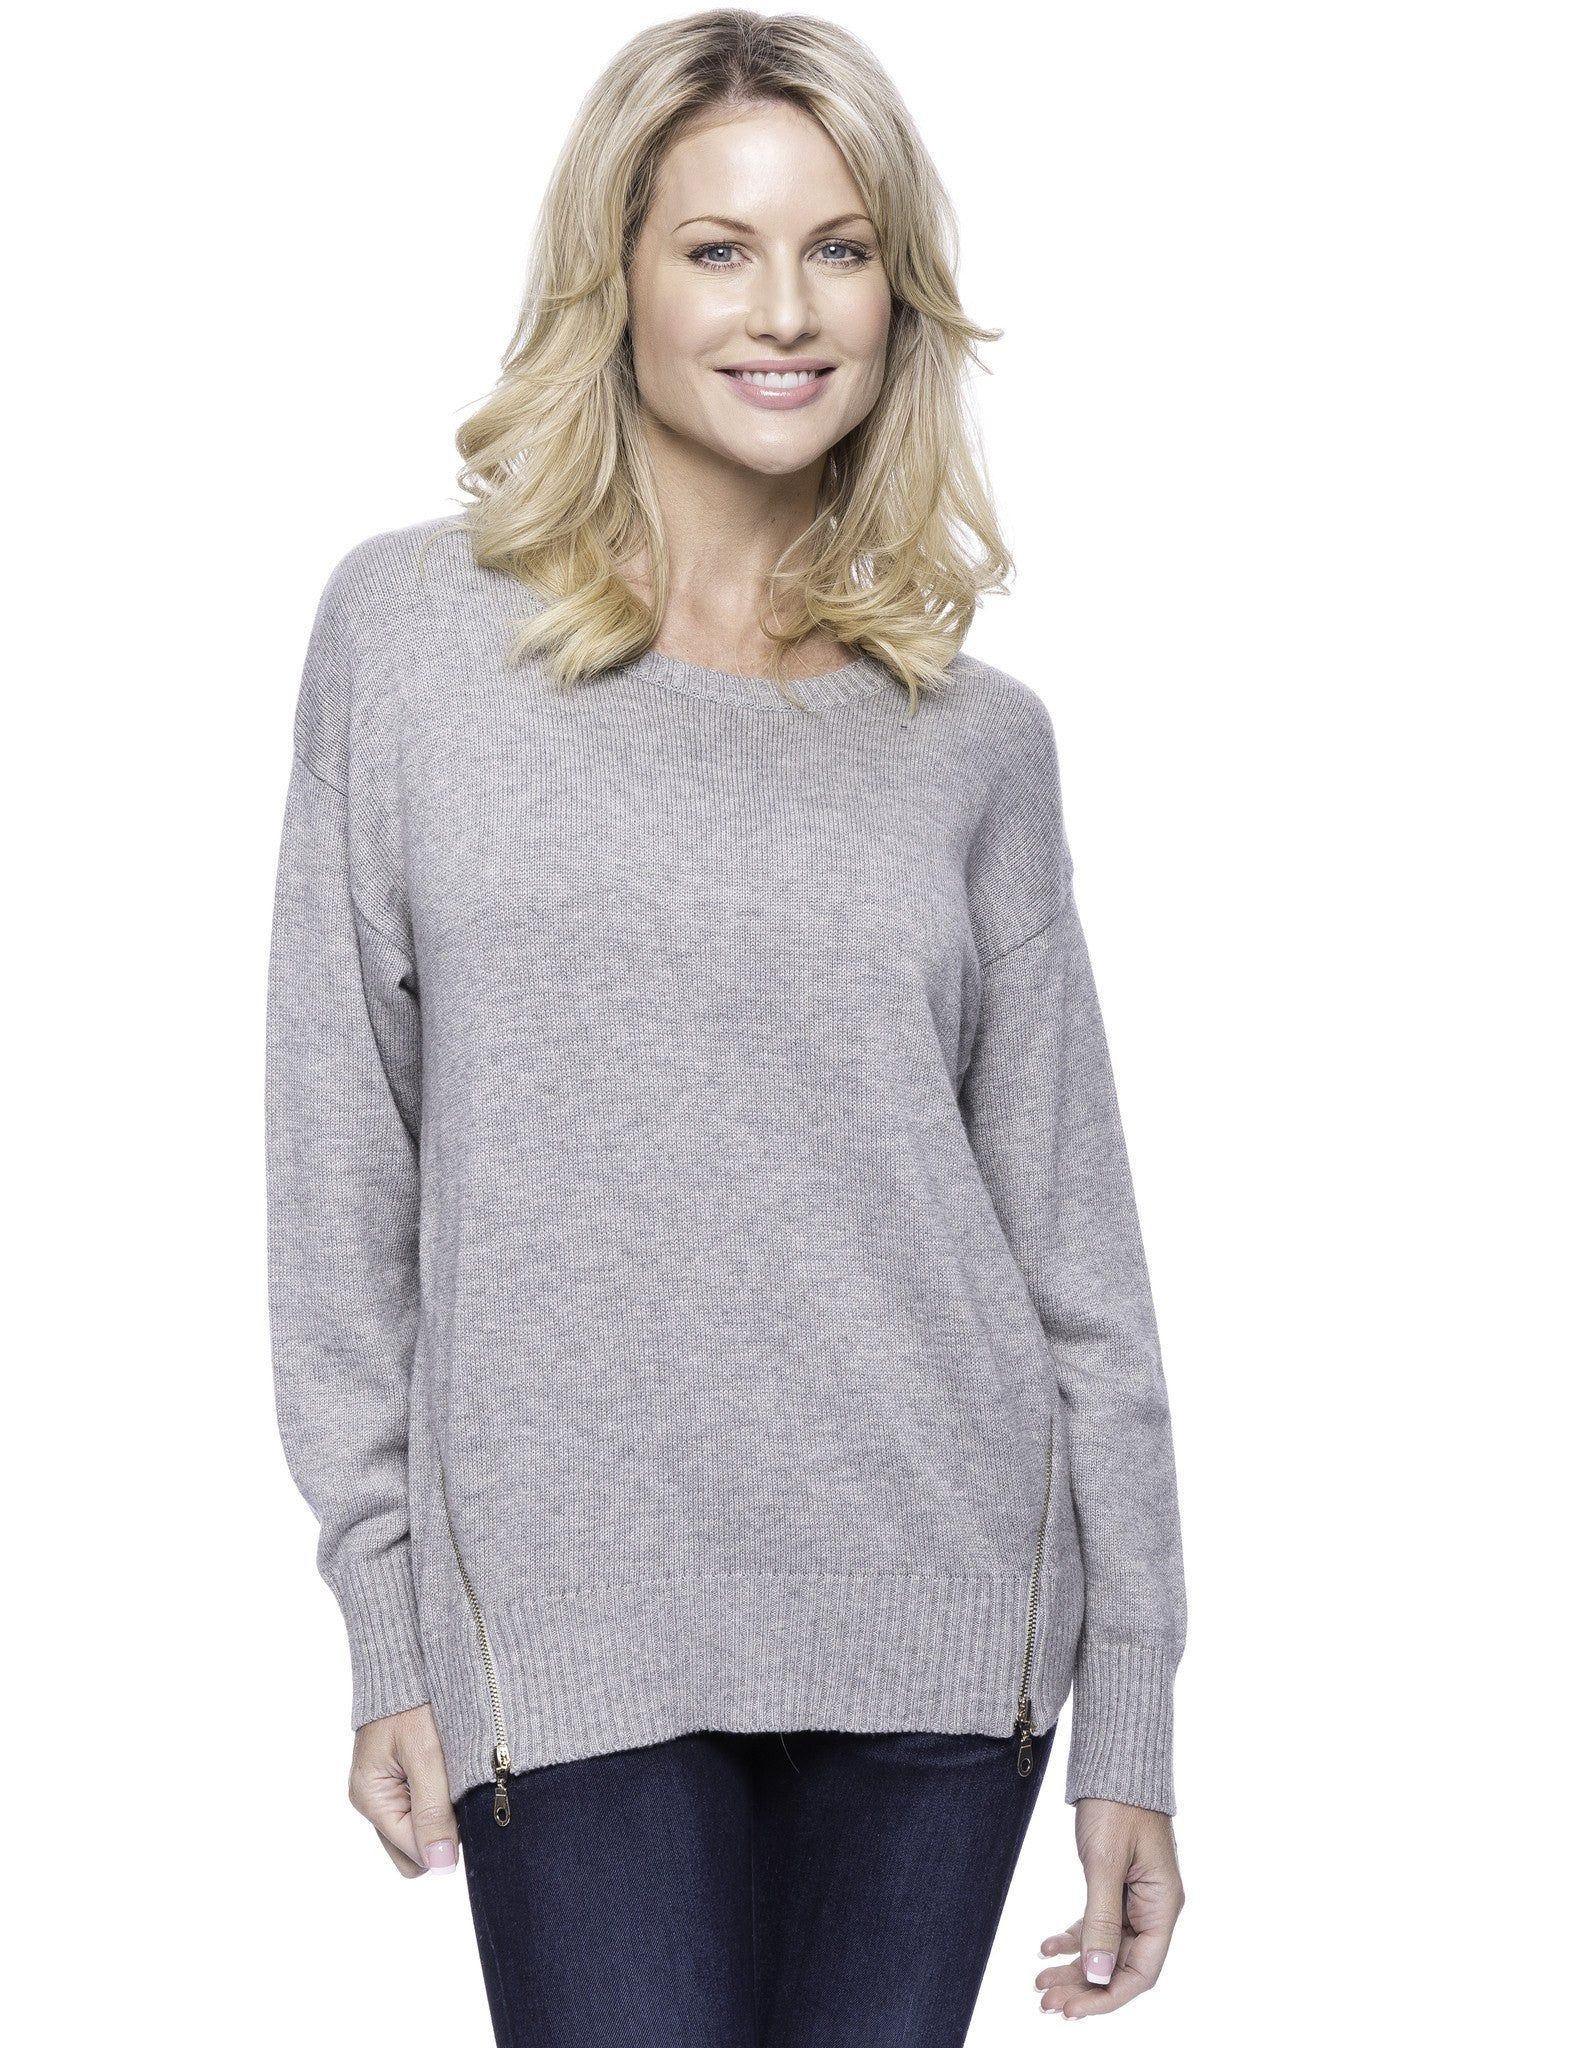 Cashmere Blend Crew Neck Sweater with Side Zip - Heather Grey